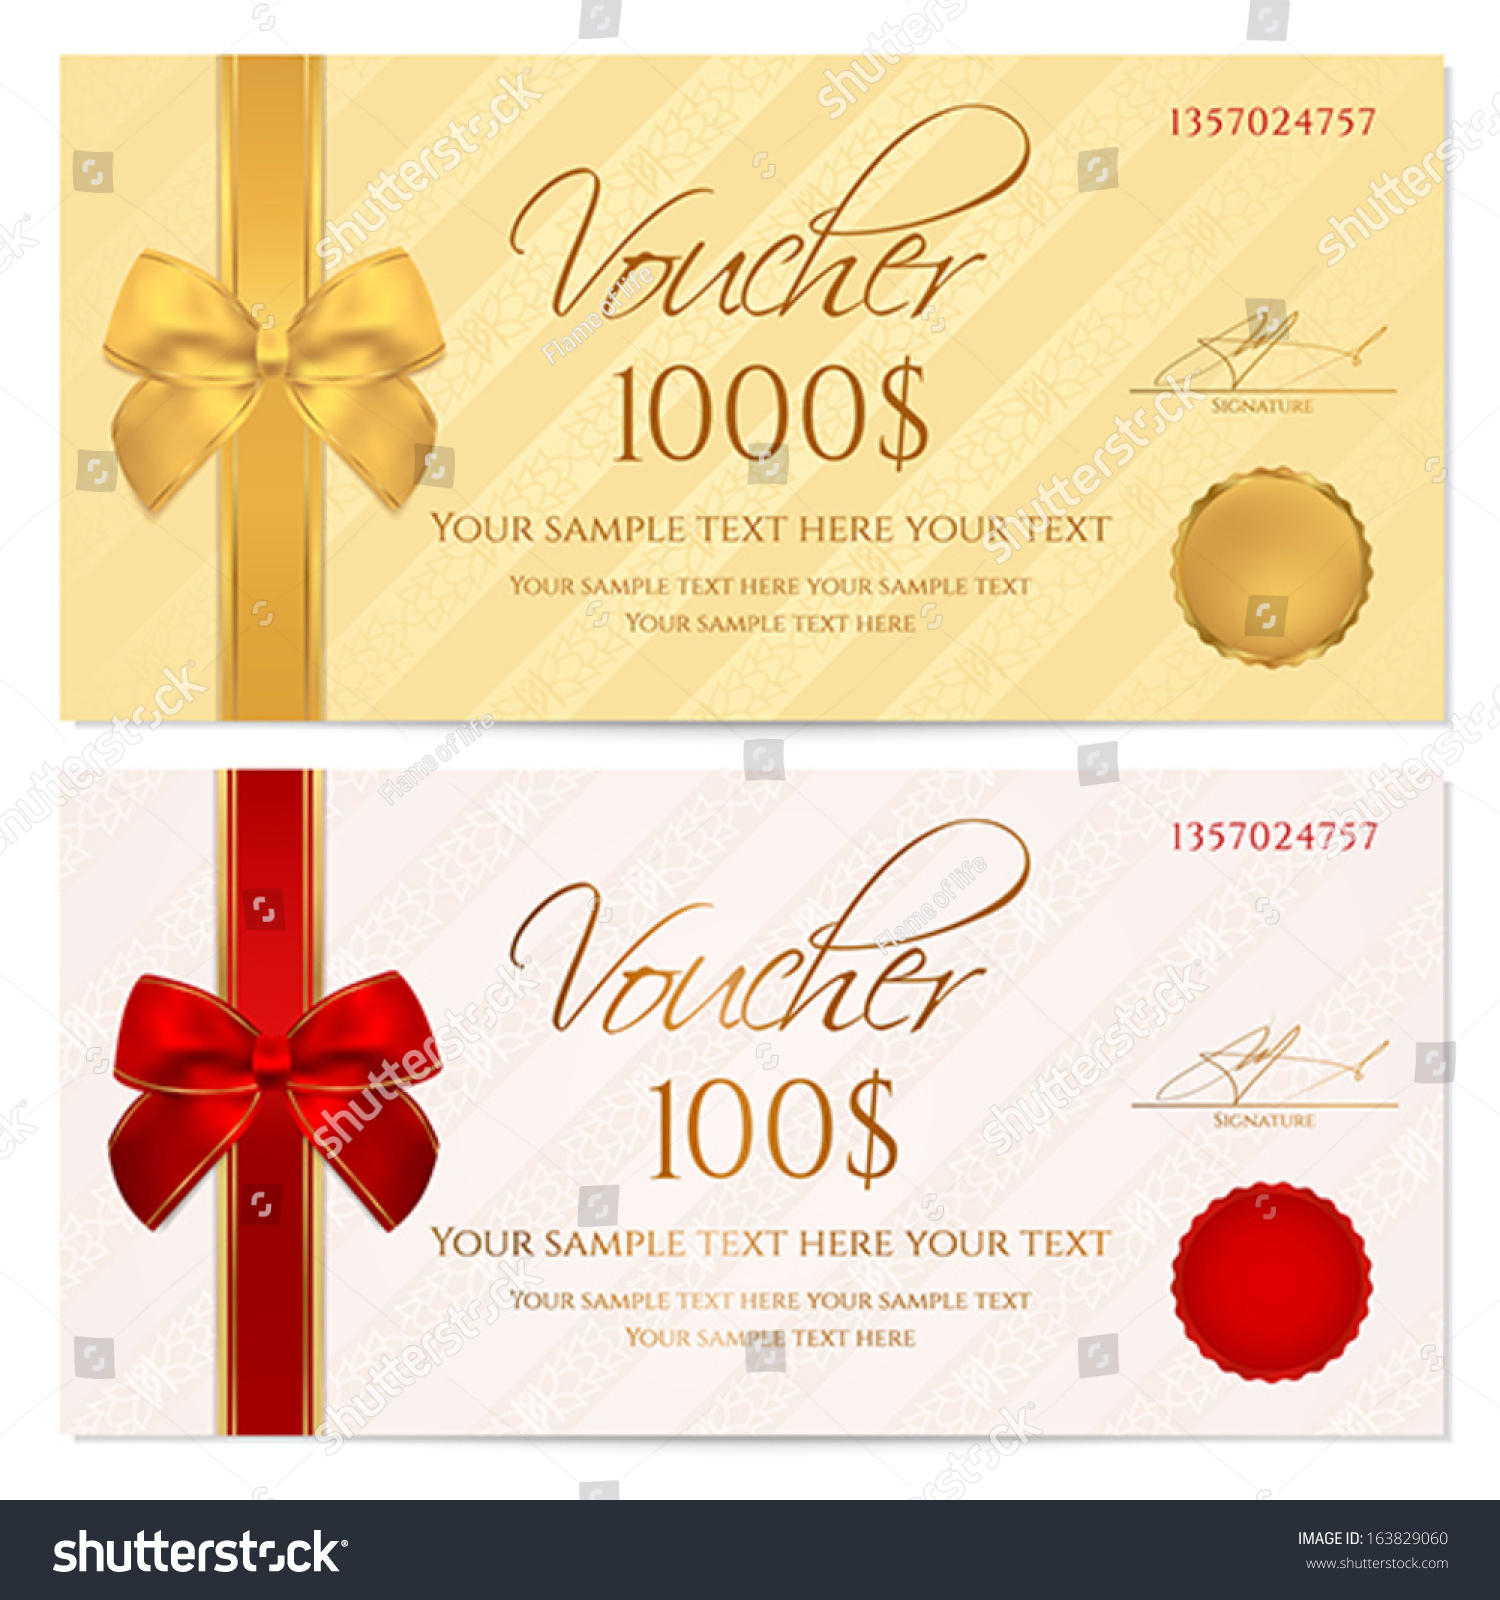 voucher gift certificate coupon template stripe stock vector voucher gift certificate coupon template stripe pattern red and gold bow